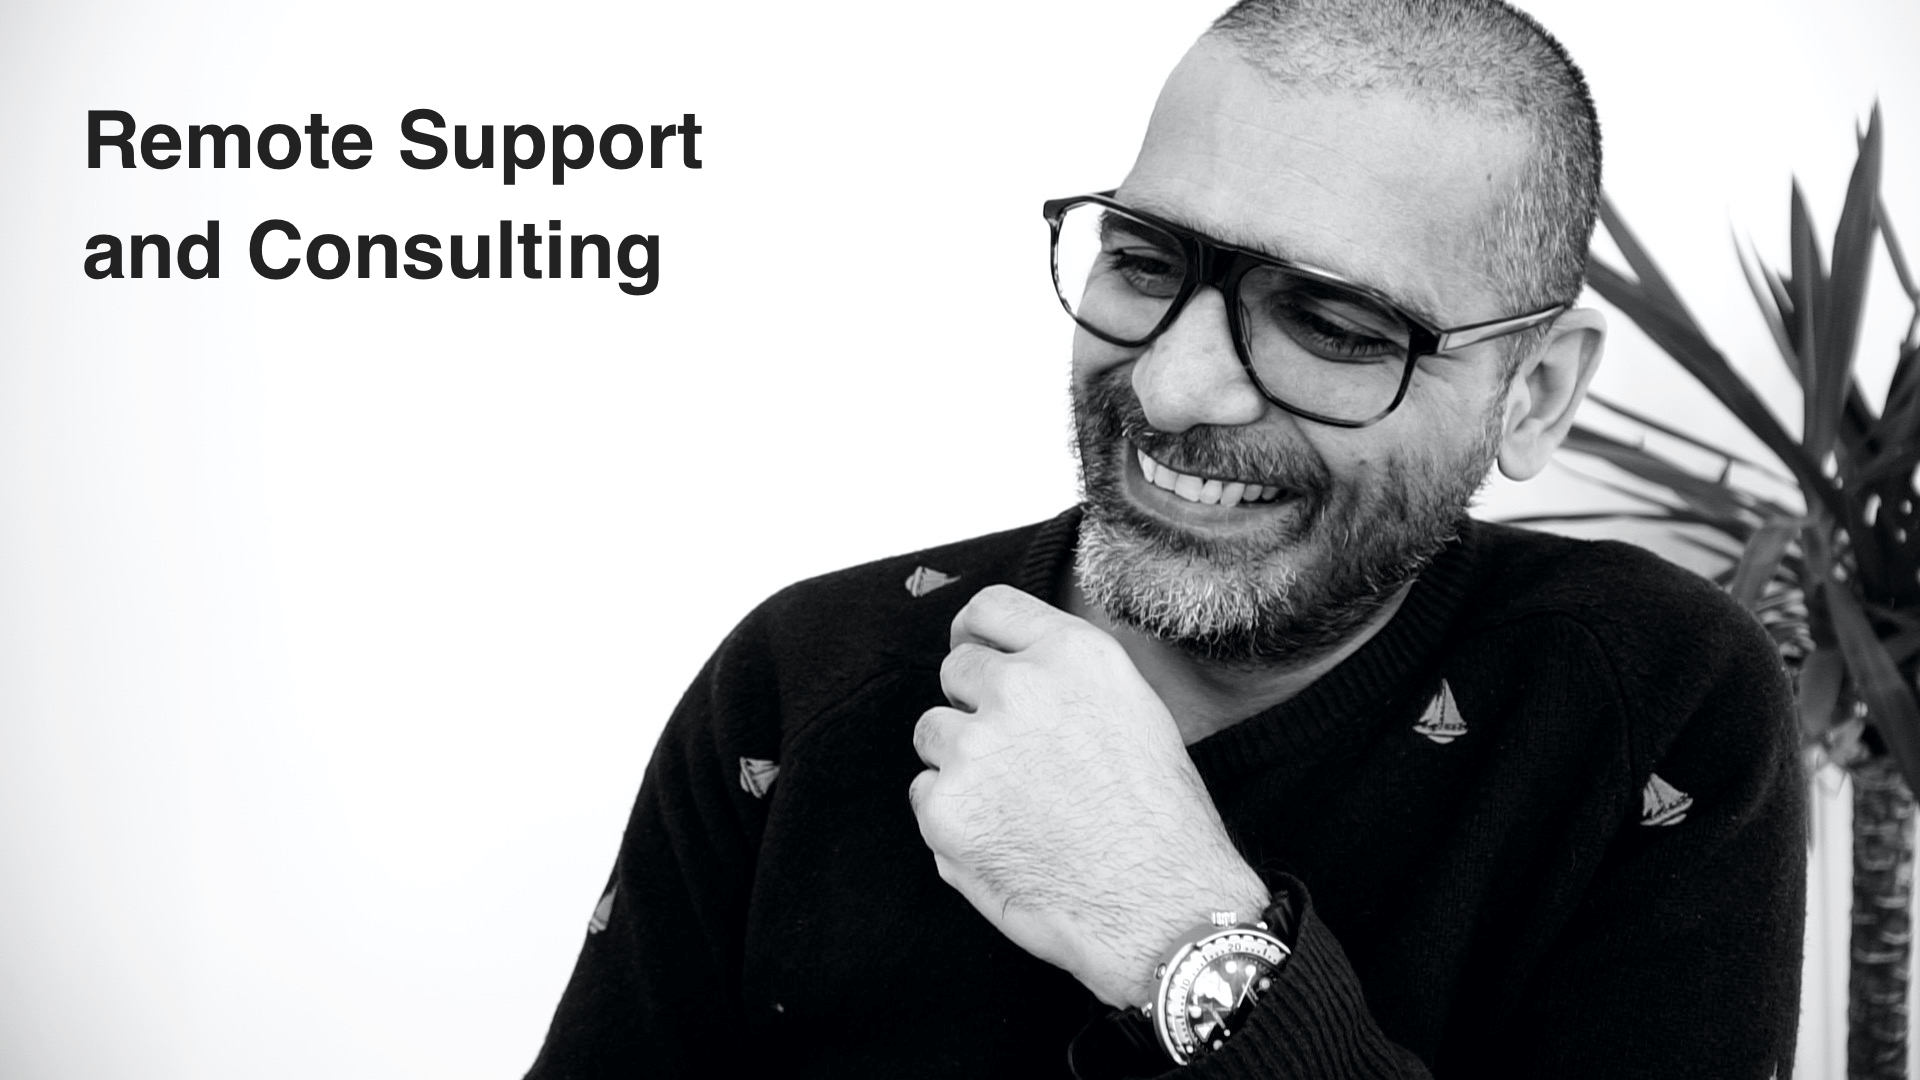 Apple Support & Advice via a Remote Session